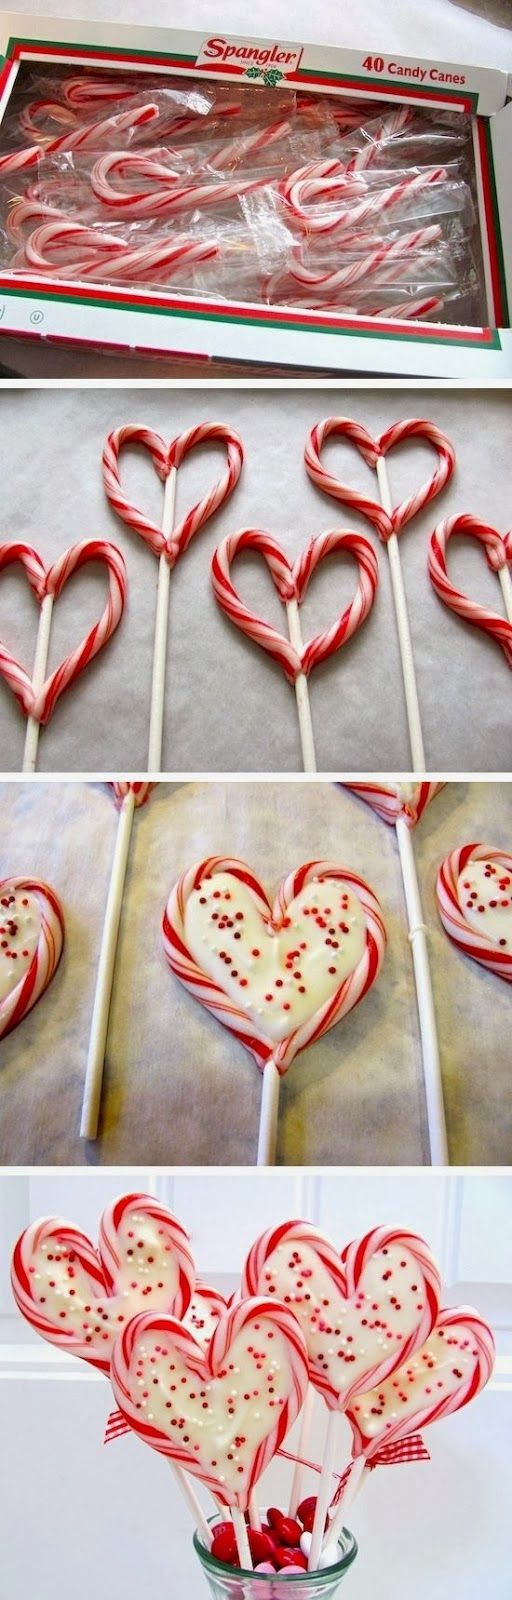 best hearts images on pinterest hearts creative ideas and pink